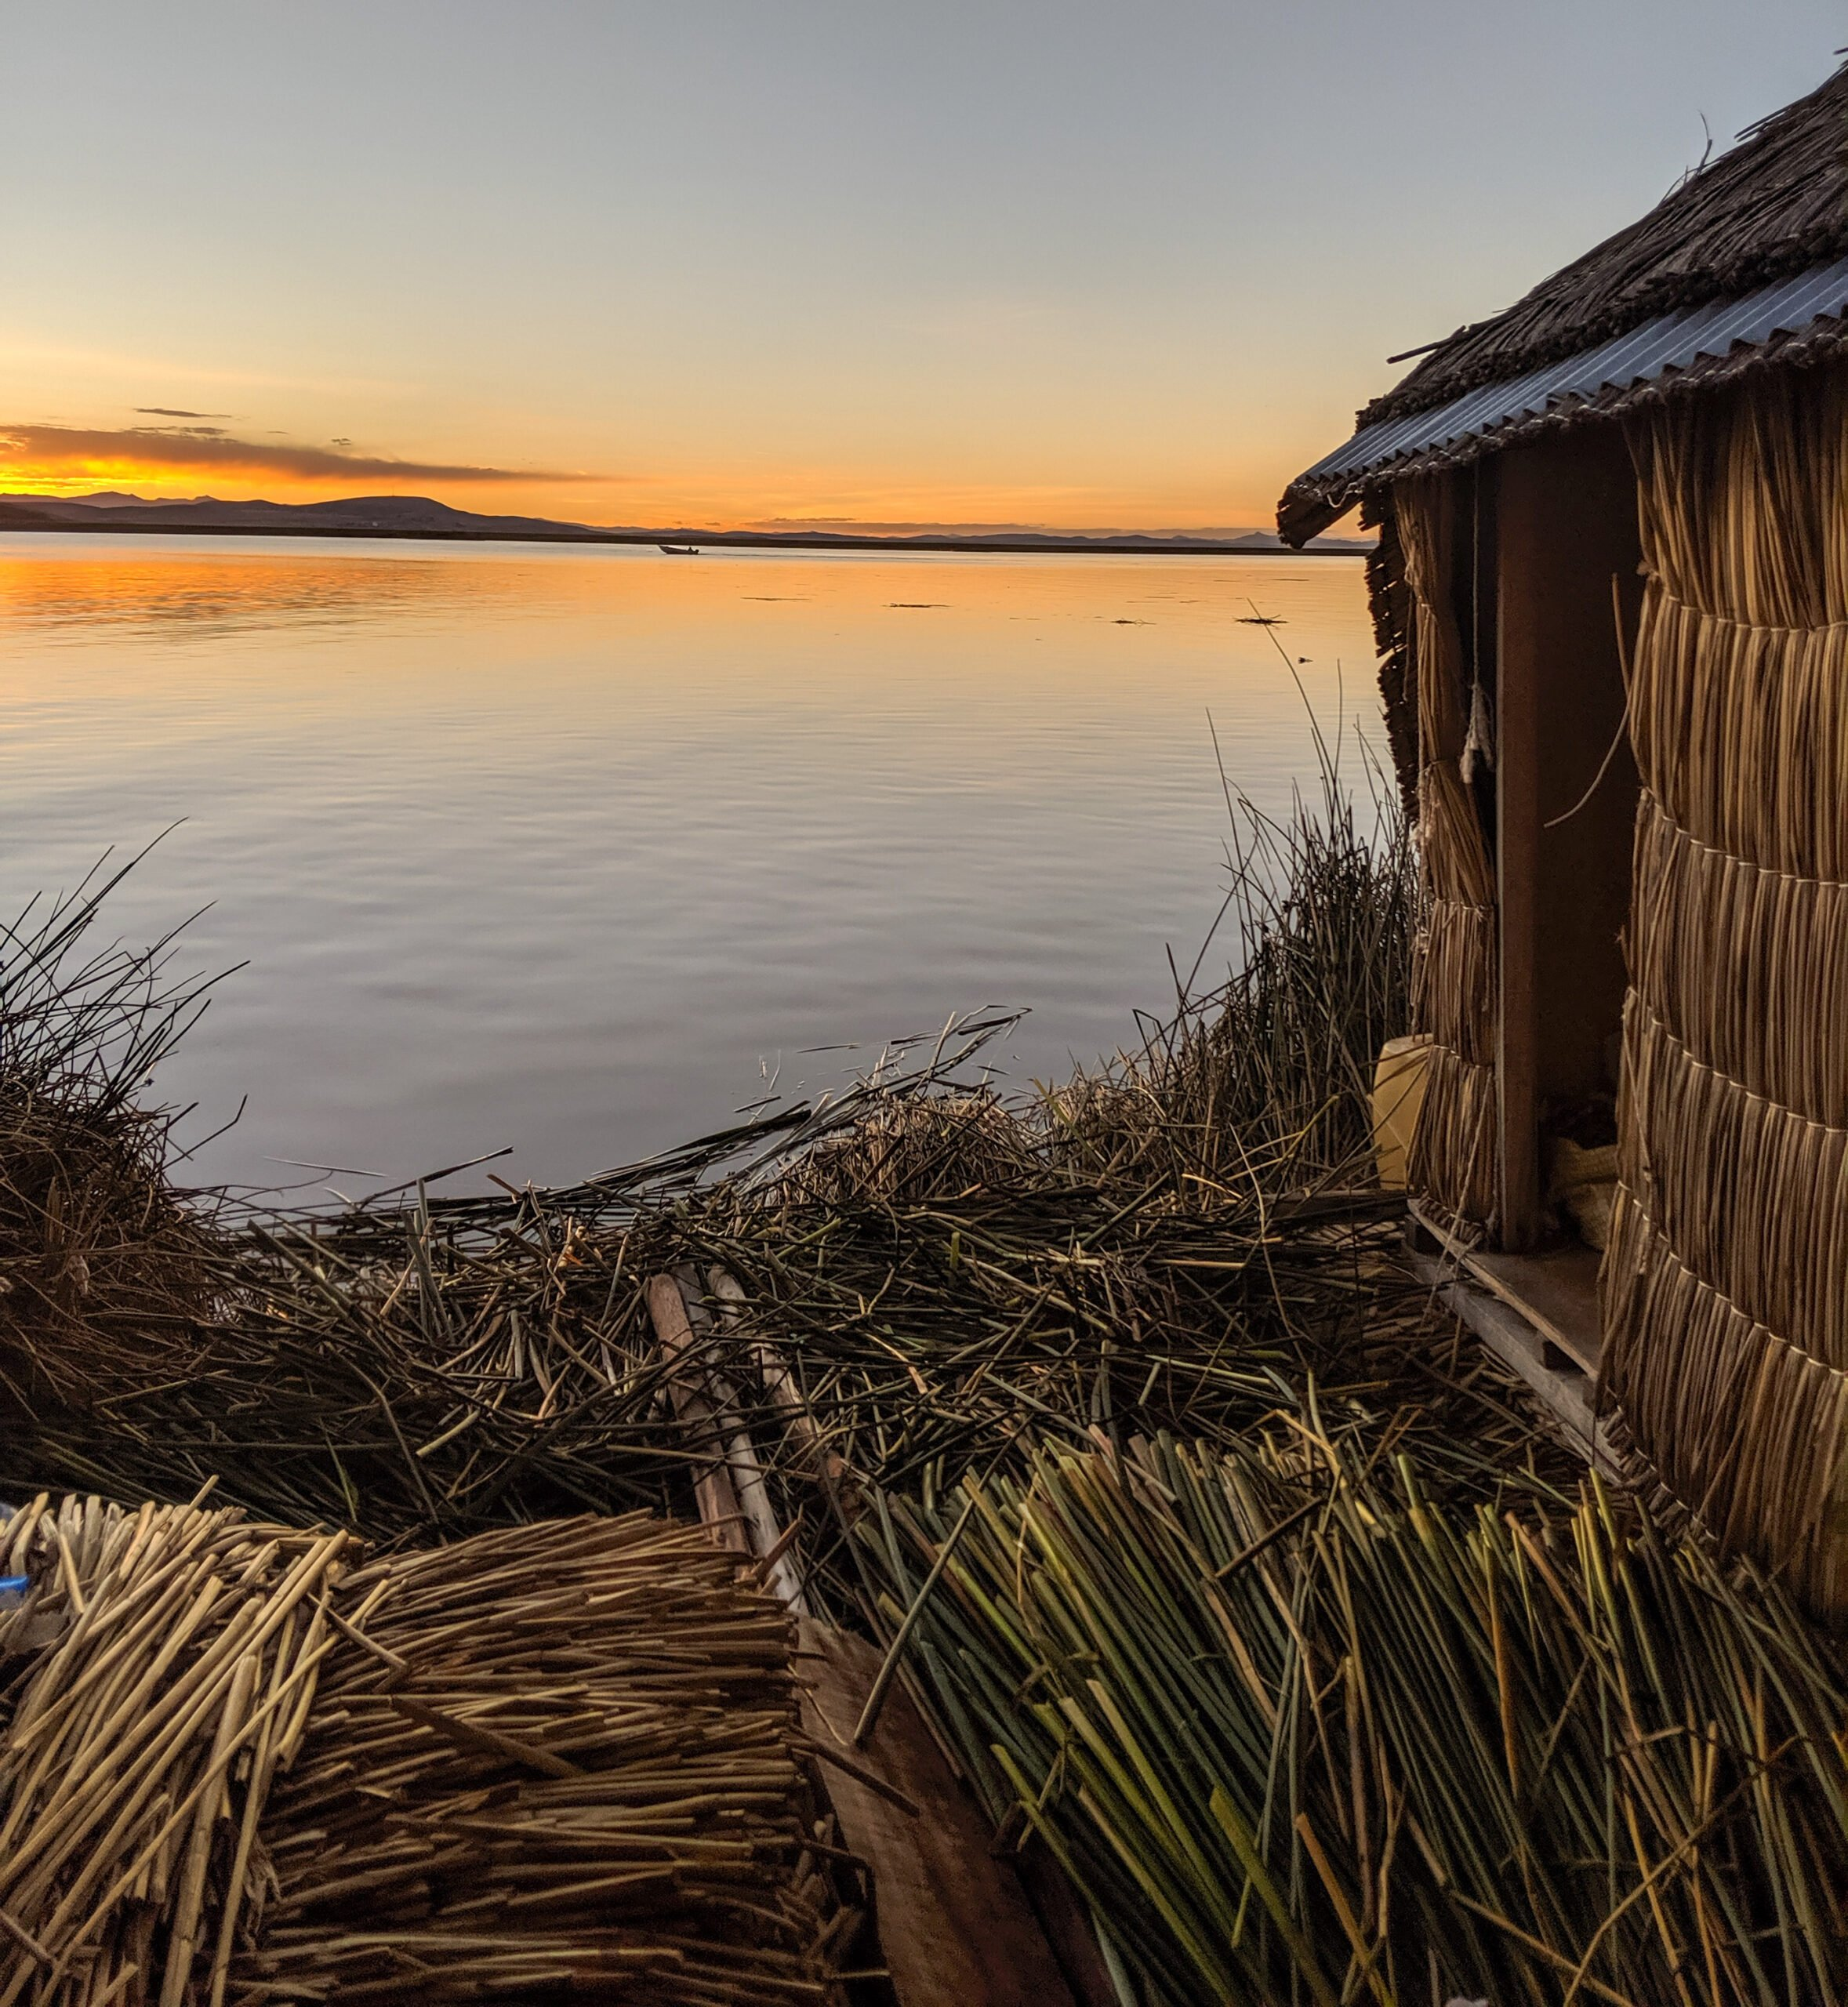 Sunset on a floating island in the uros village.